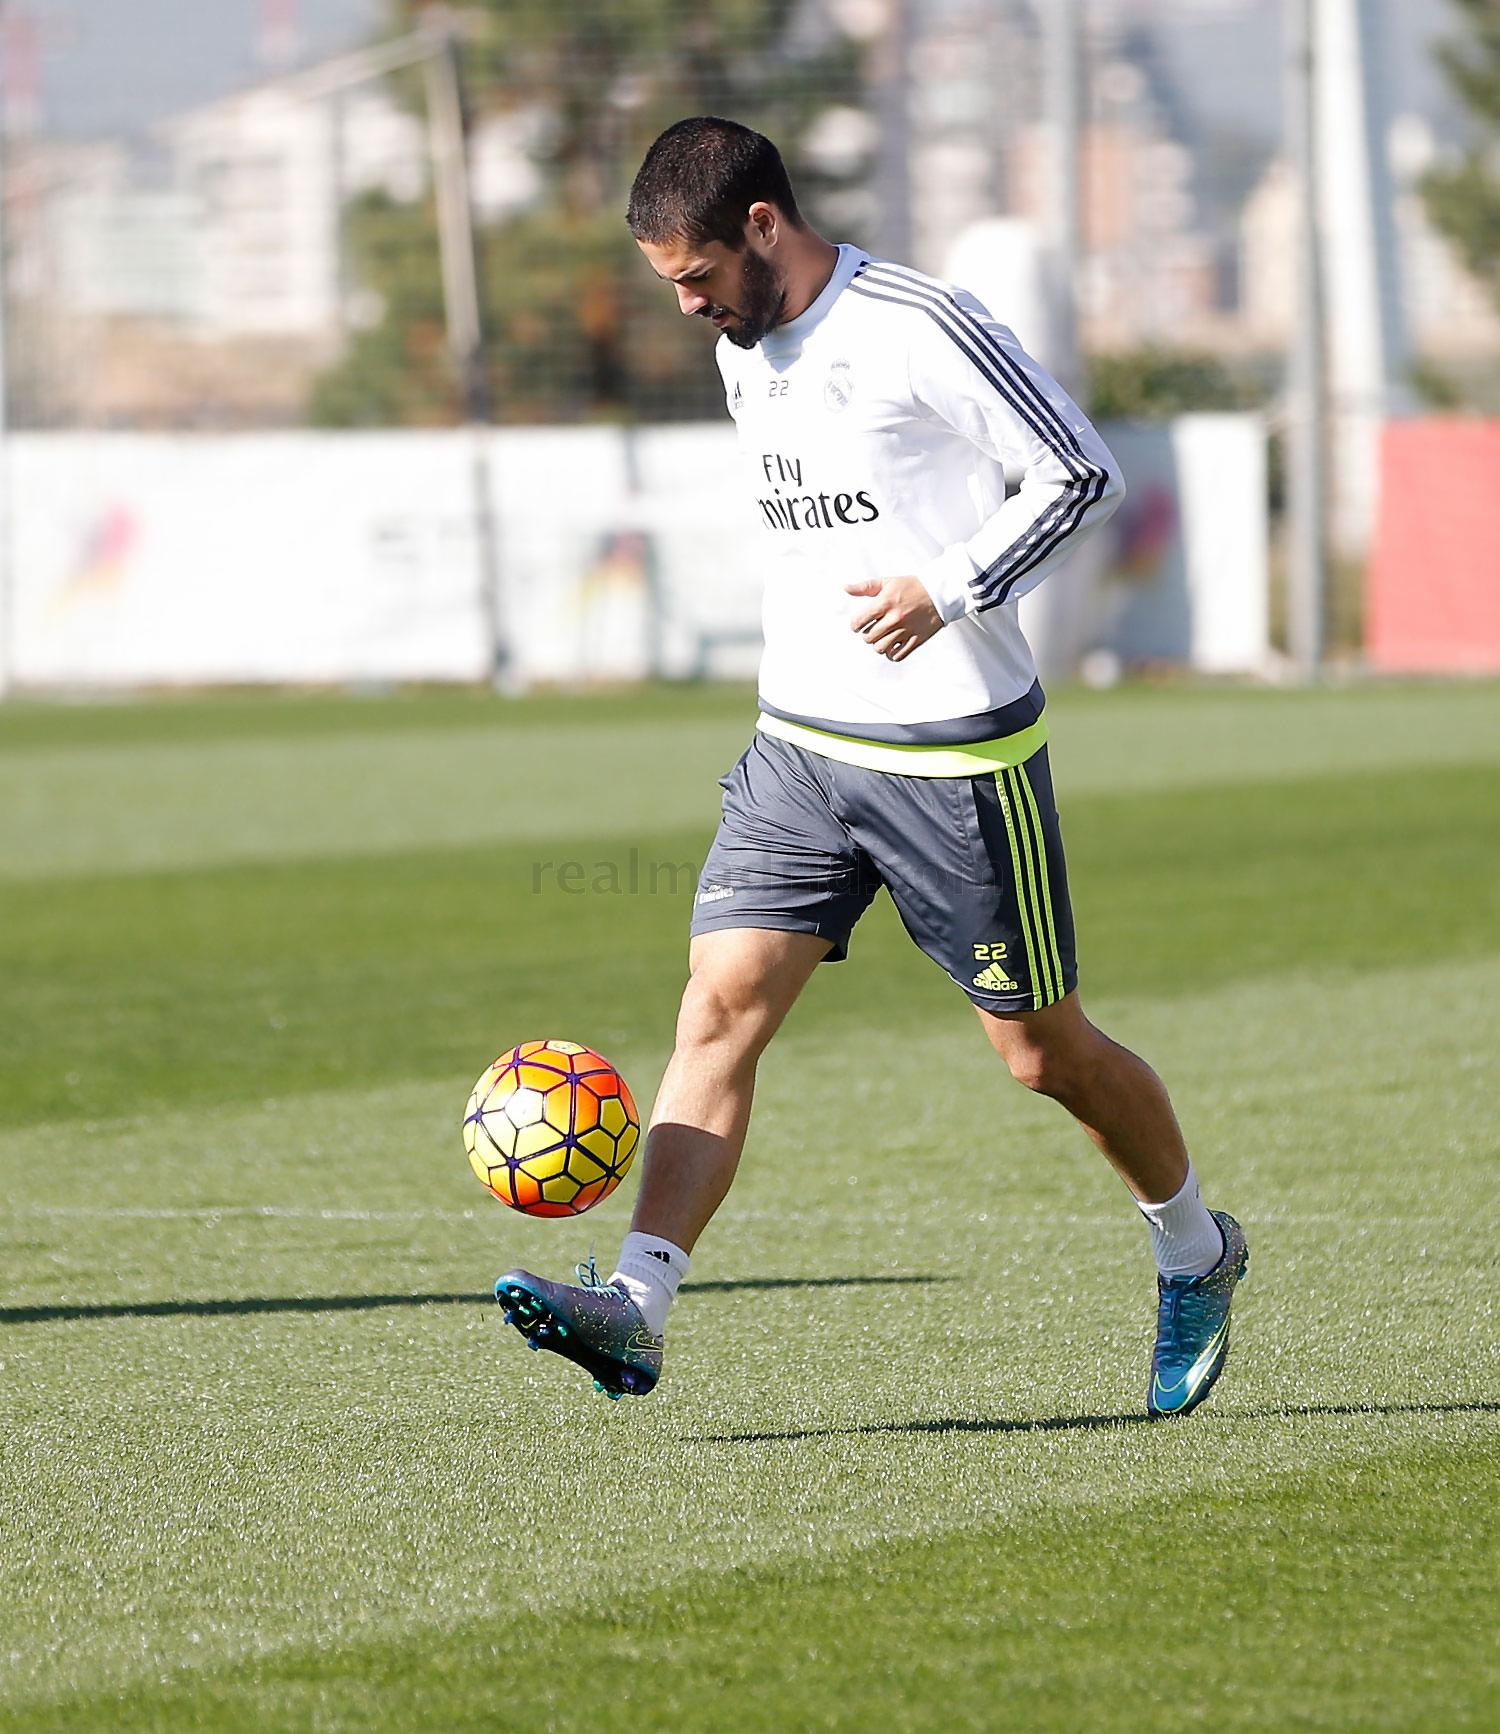 Real Madrid - Entrenamiento del Real Madrid - 22-10-2015